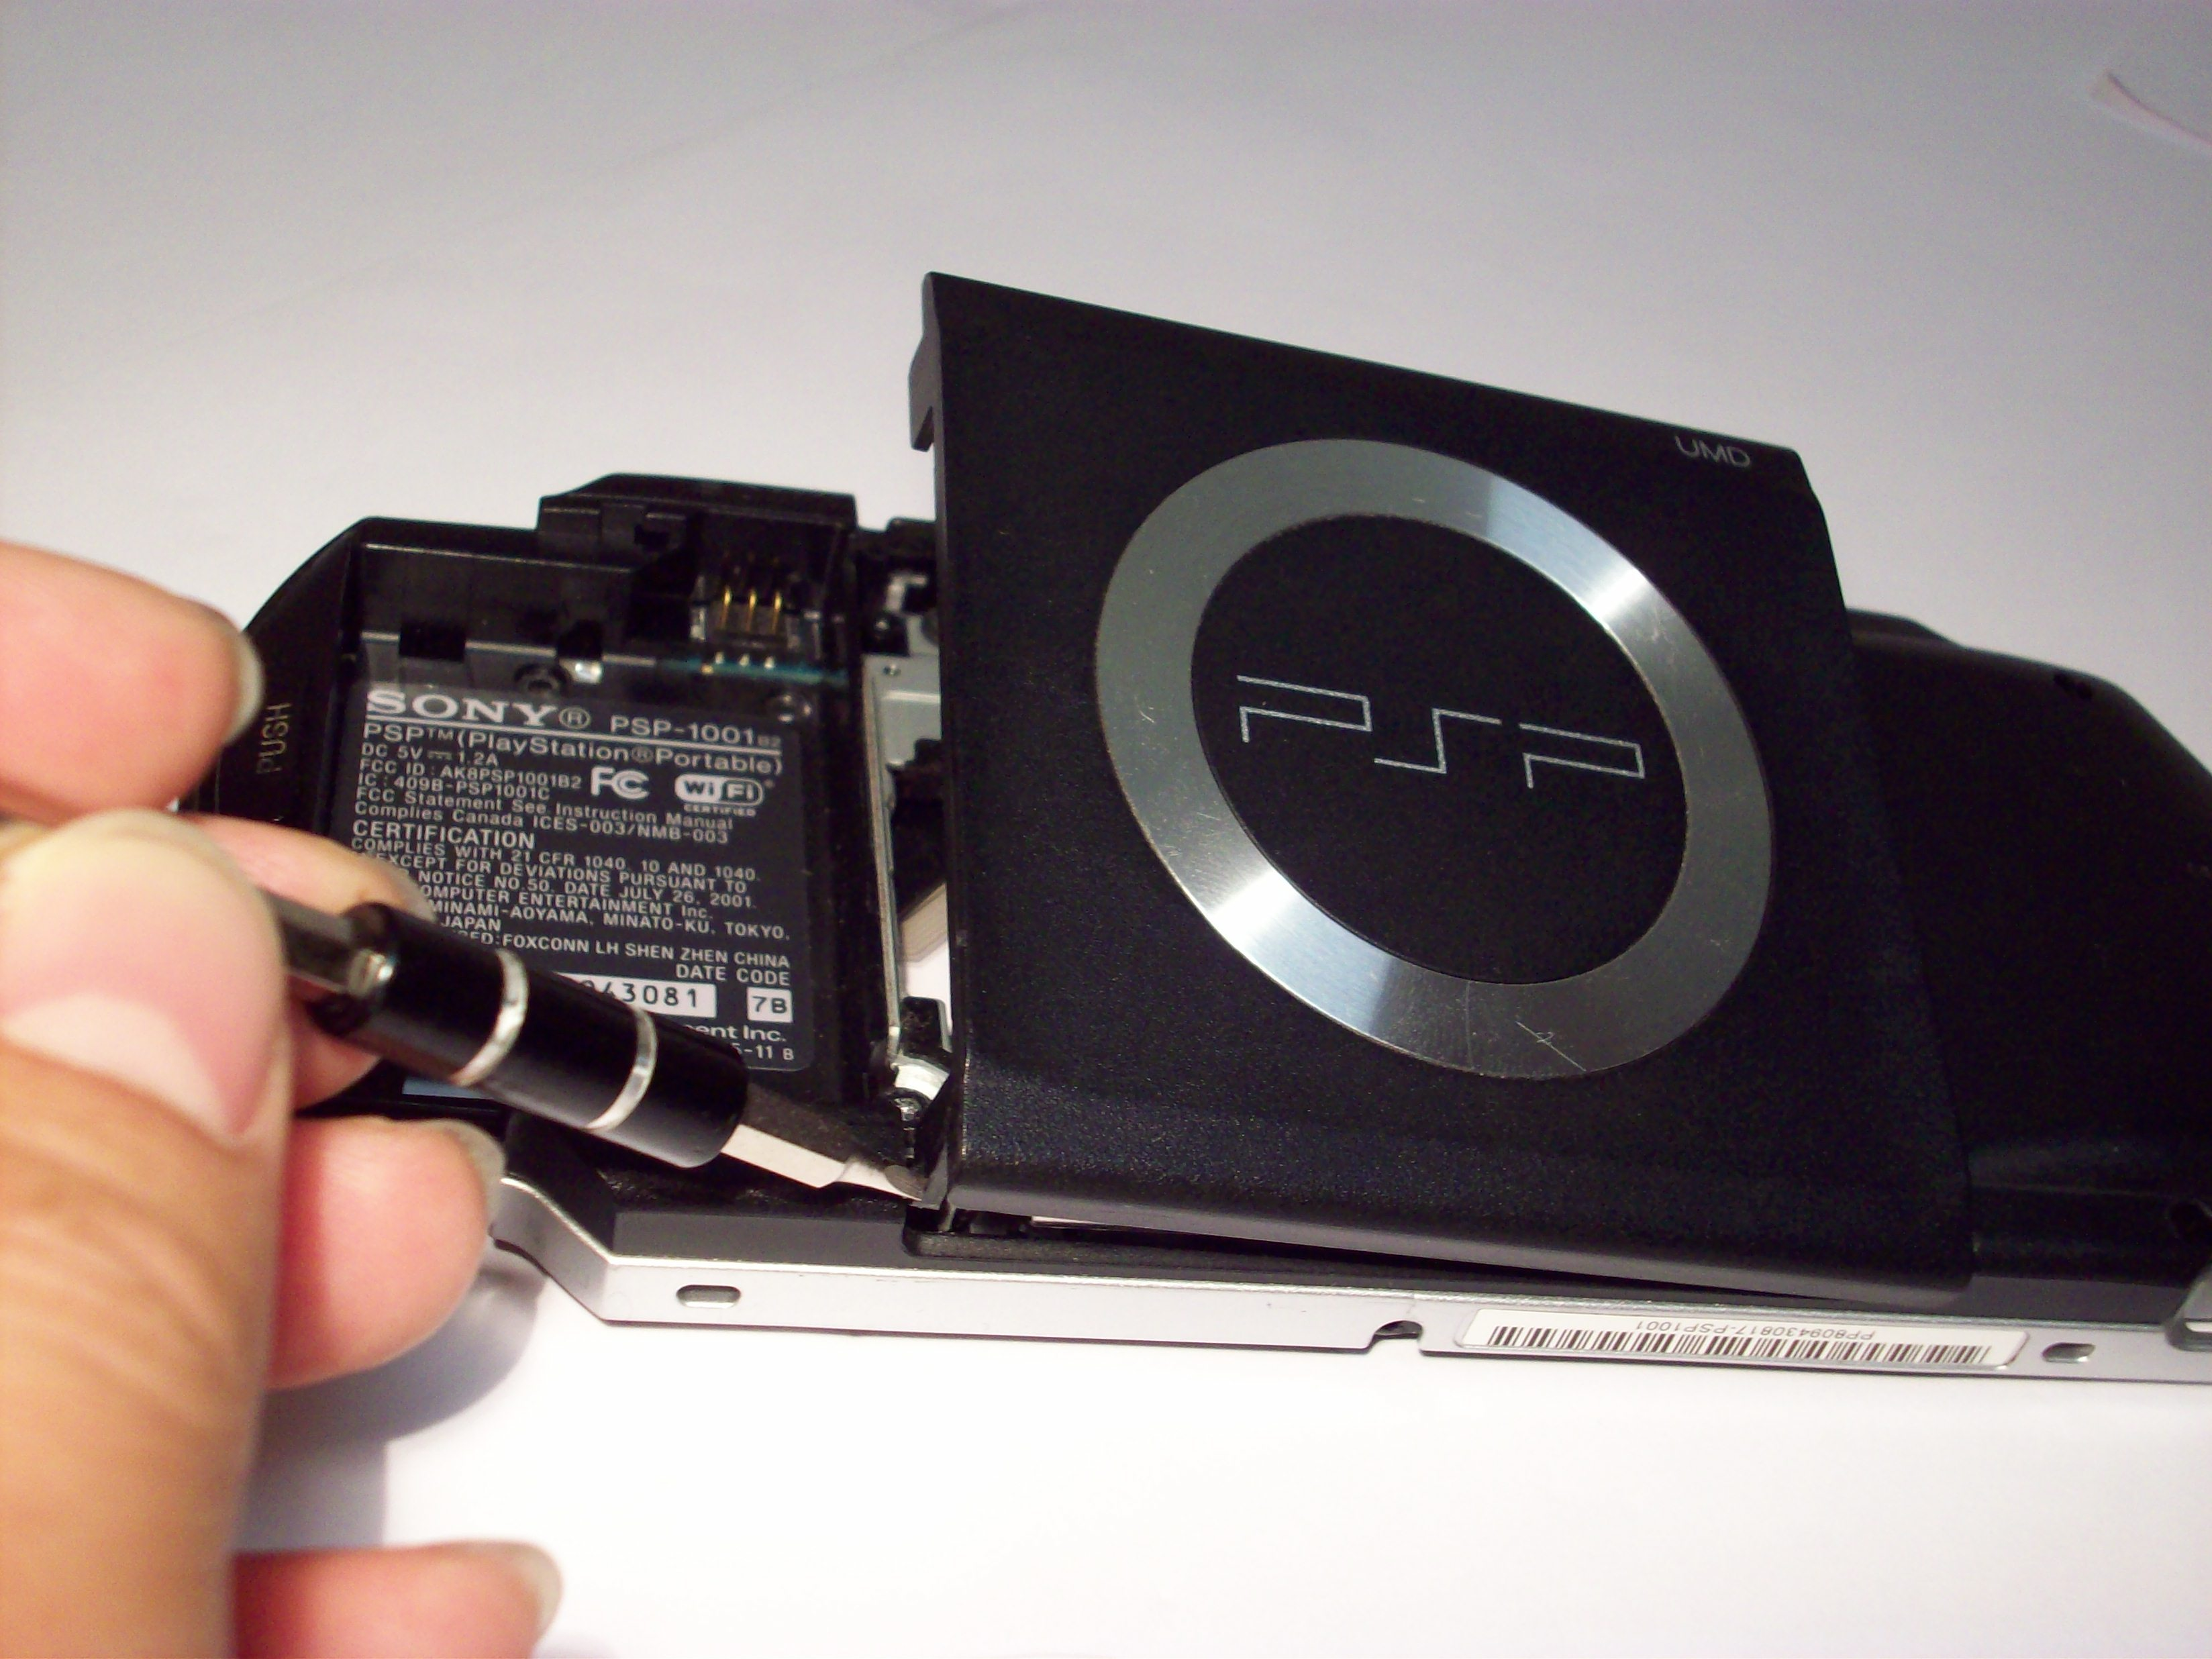 psp 1000 umd door replacement ifixit repair guide rh ifixit com sony psp 1003 user manual sony psp 1003 manual